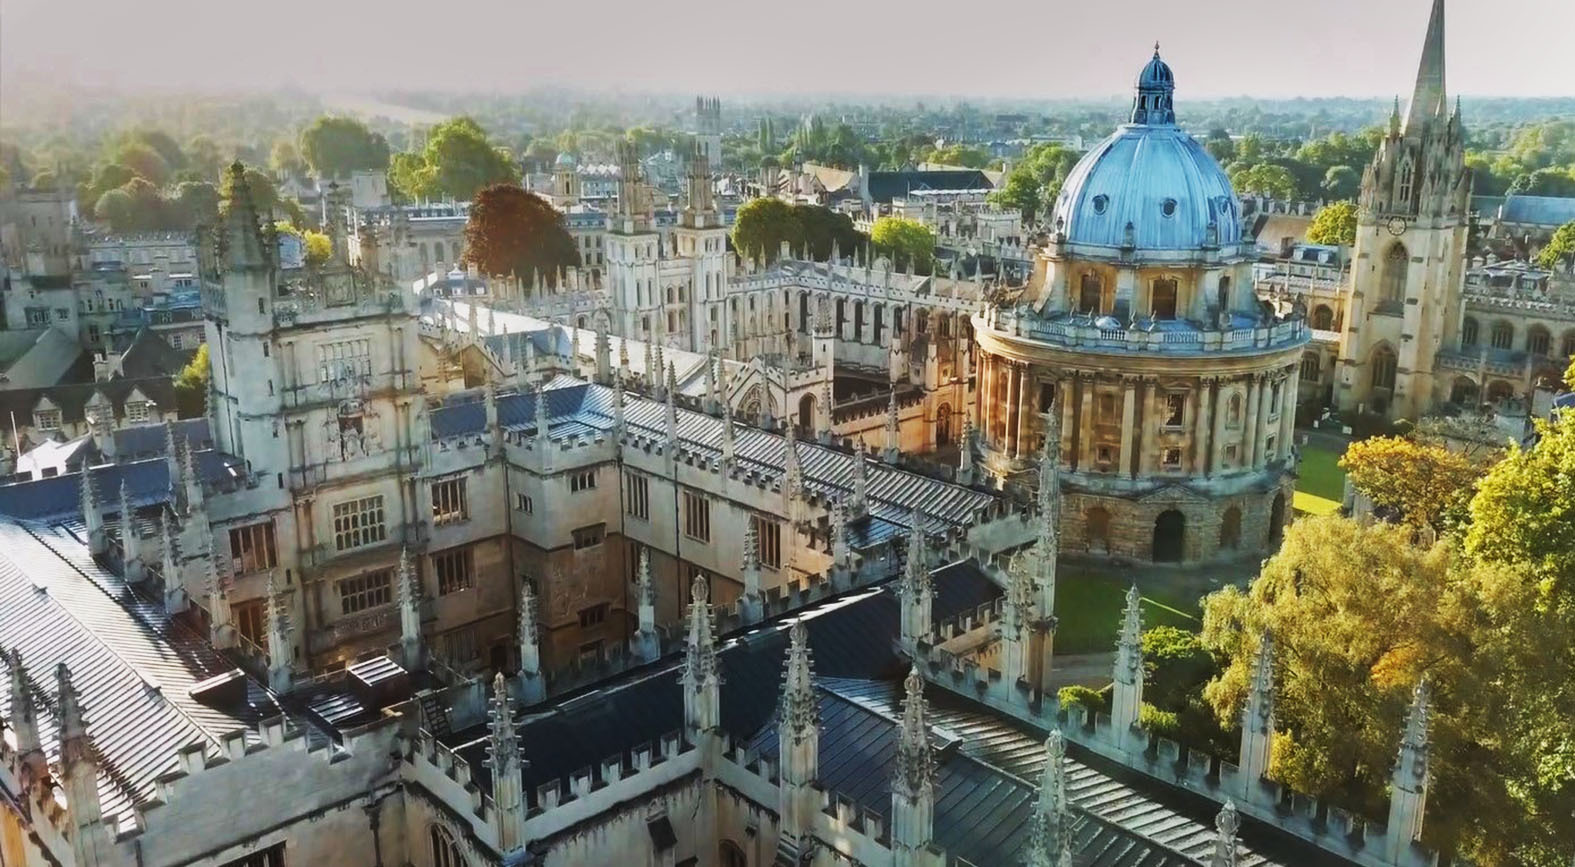 Oxford skyline by Stephen Kailey.Picture shows the Bodleian Library on the left, the Radcliffe Camera in the middle and the University Church of St Mary the Virgin on the right..